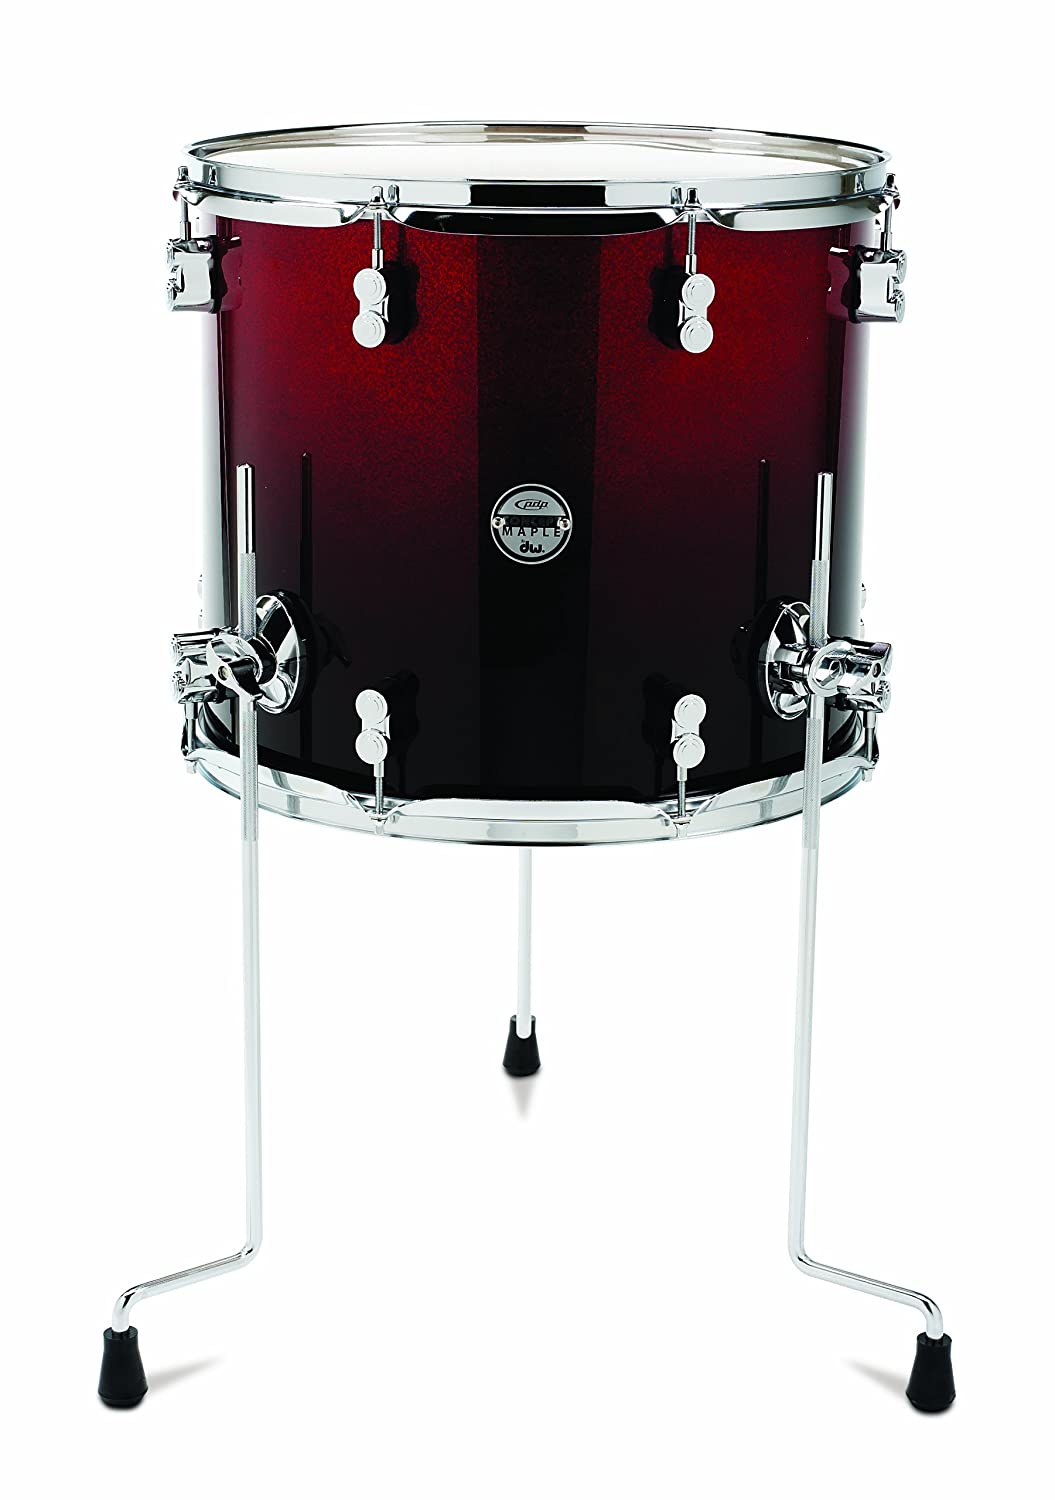 Amazon.com: Pacific Drums PDCM1618TTRB 16 X 18 Inches Floor Tom With Chrome  Hardware   Red To Black Fade: Musical Instruments